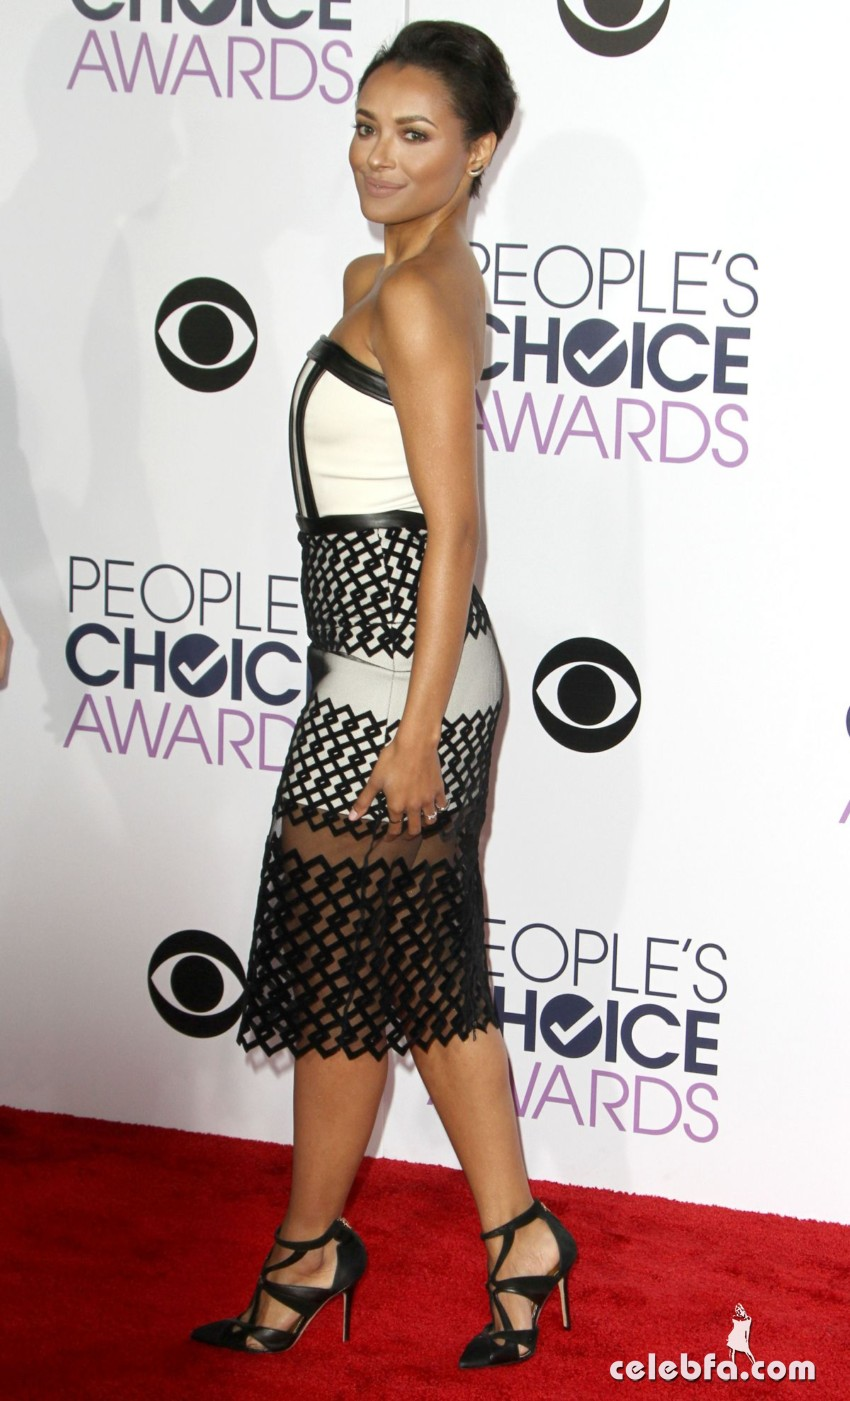 kat-graham-at-2016-people-s-choice-awards-in-los-angeles (4)